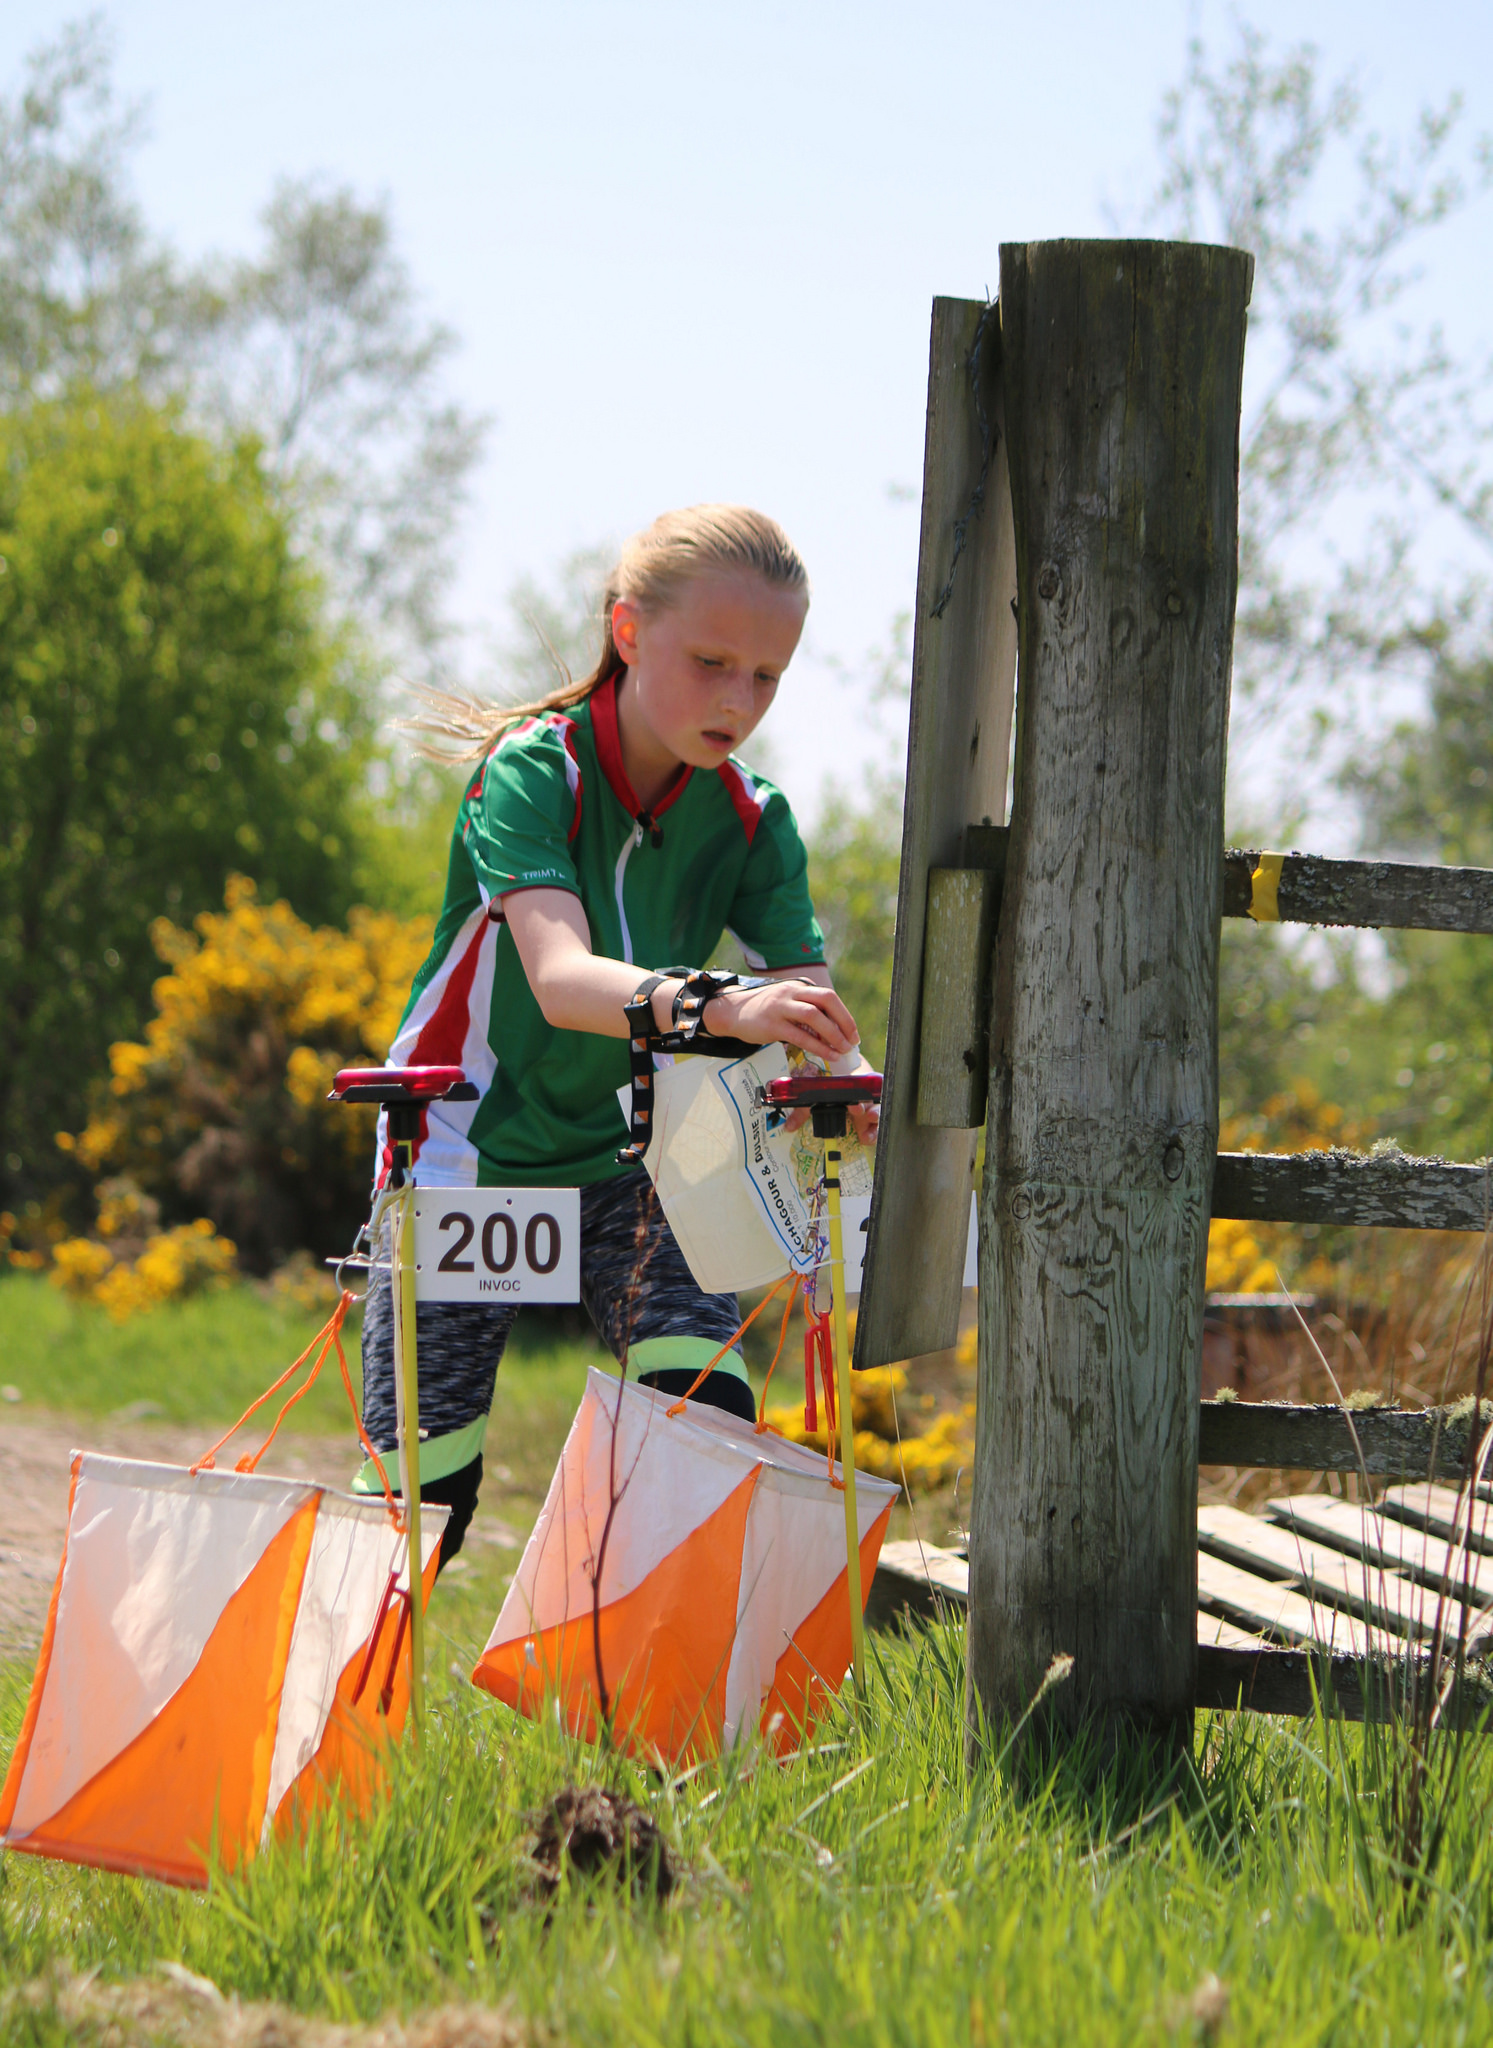 Orienteering is a great outdoor sport Scotland